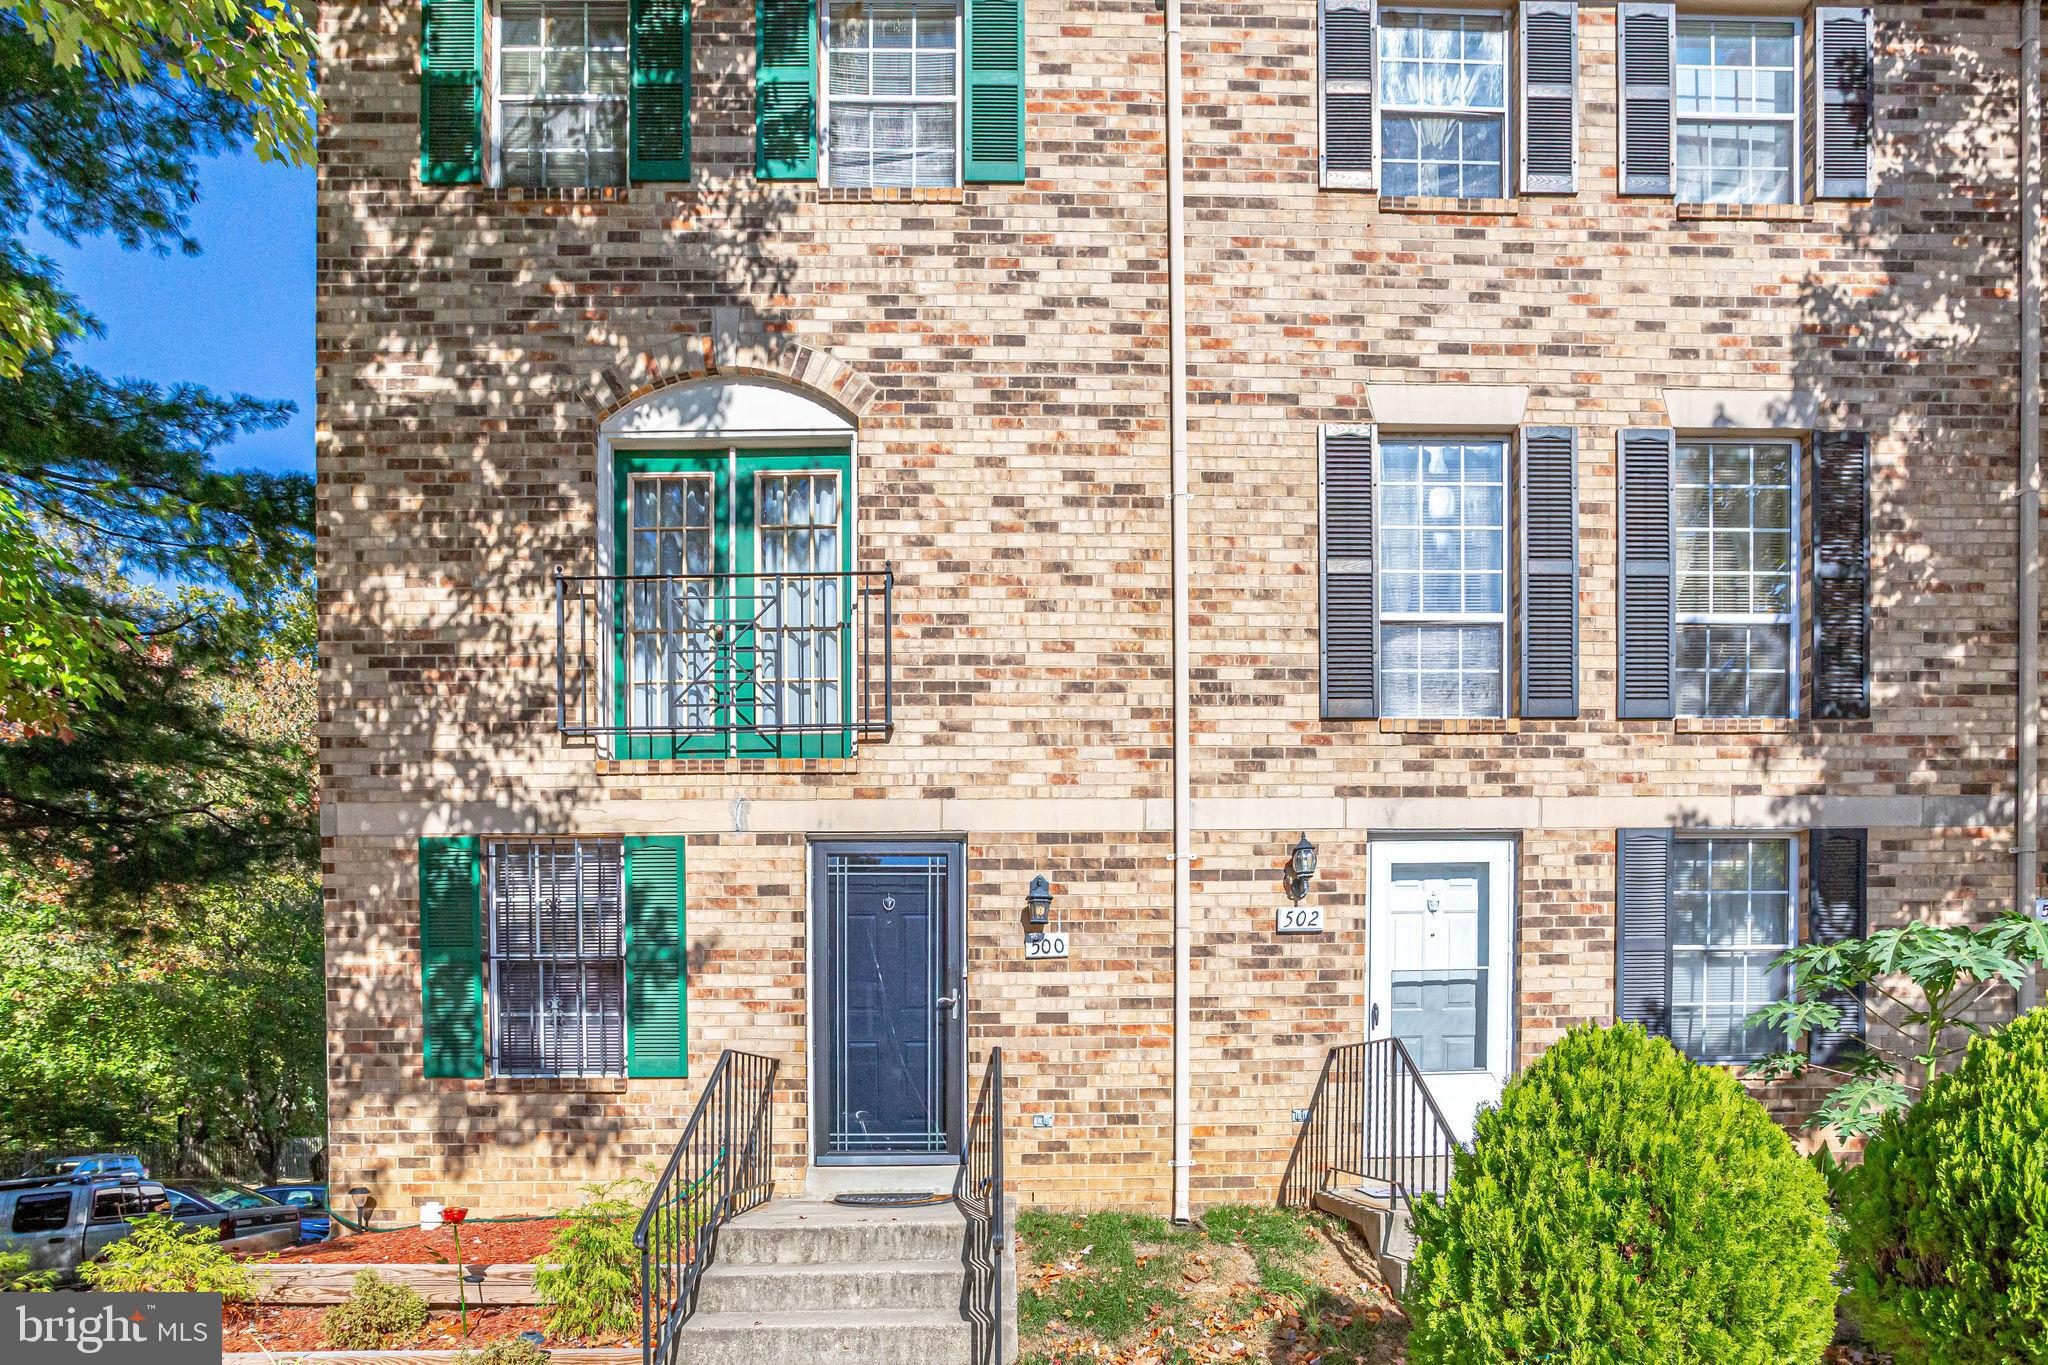 **Coming Soon** Beautiful 3 BD/2.5 BA Townhome located inside the Beltway. This house boasts plenty